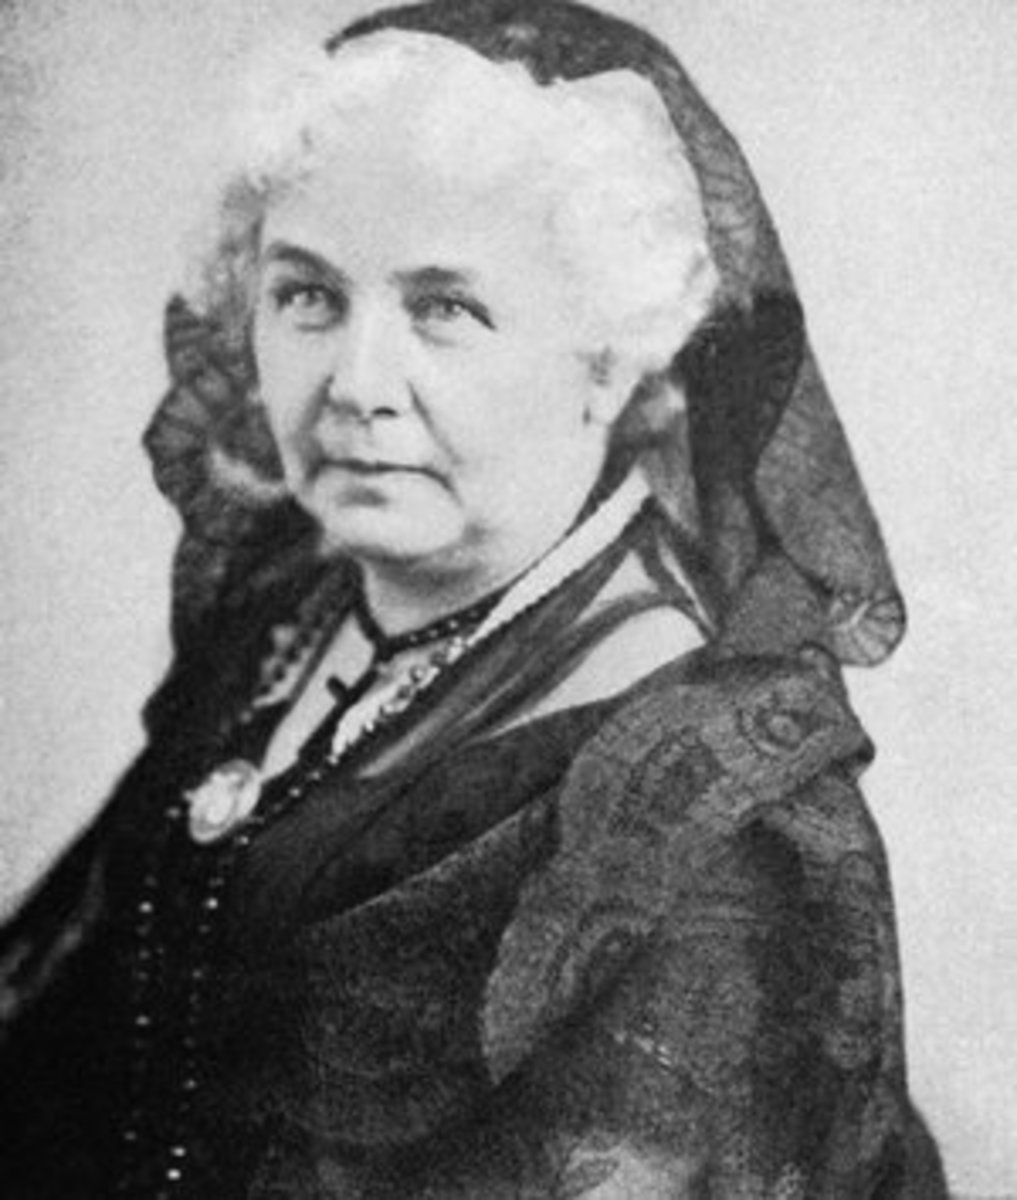 Cady Stanton started out as an abolitionist during the 1840's and then took her convictions and personal experiences into women's suffrage, which she is mostly known for.